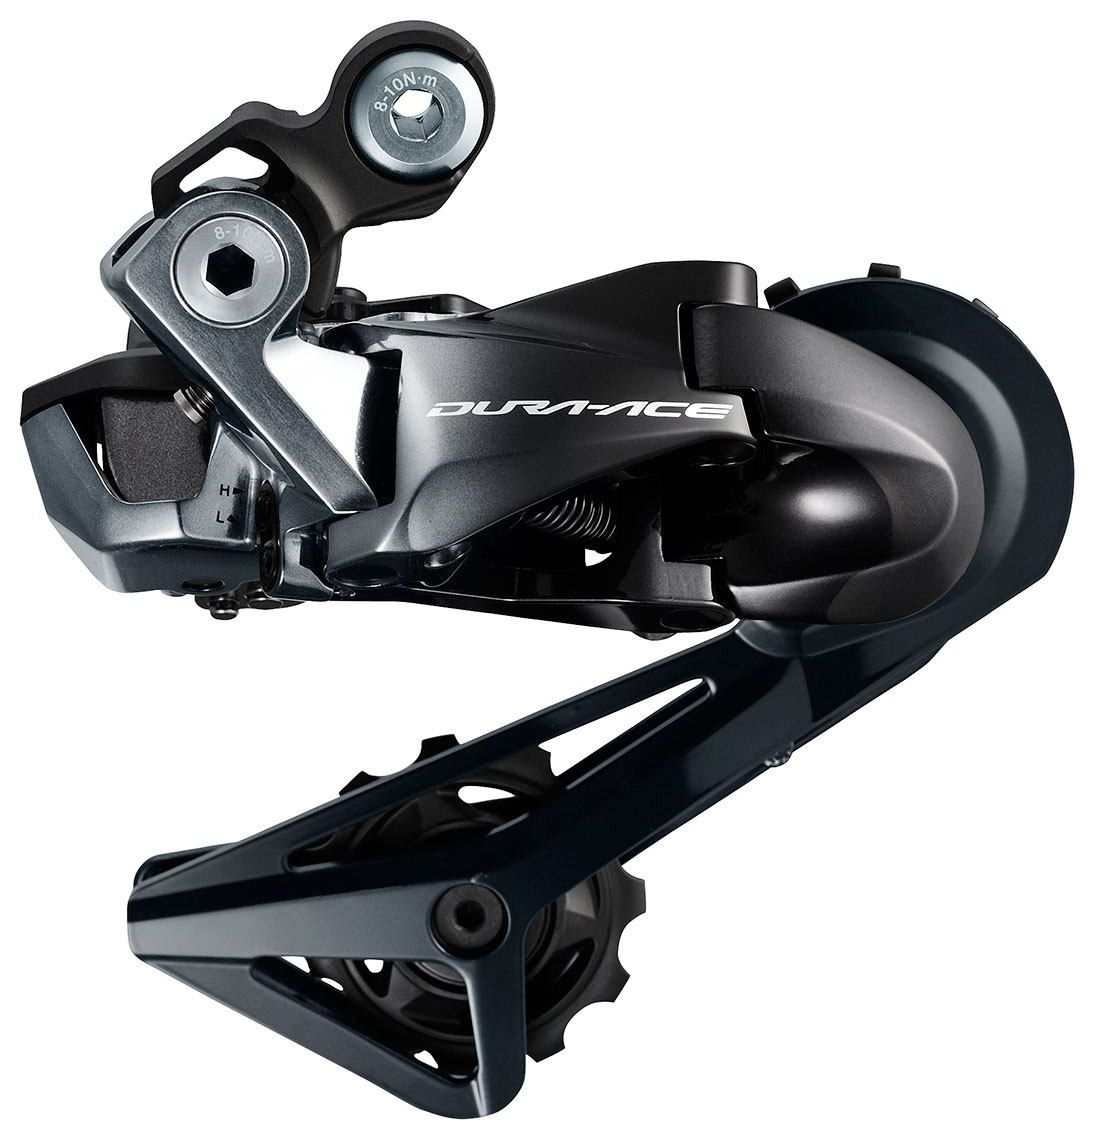 Запчасть Shimano Dura-Ace Di2 R9150 (IRDR9150SS) велосипед specialized s works venge dura ace 2015